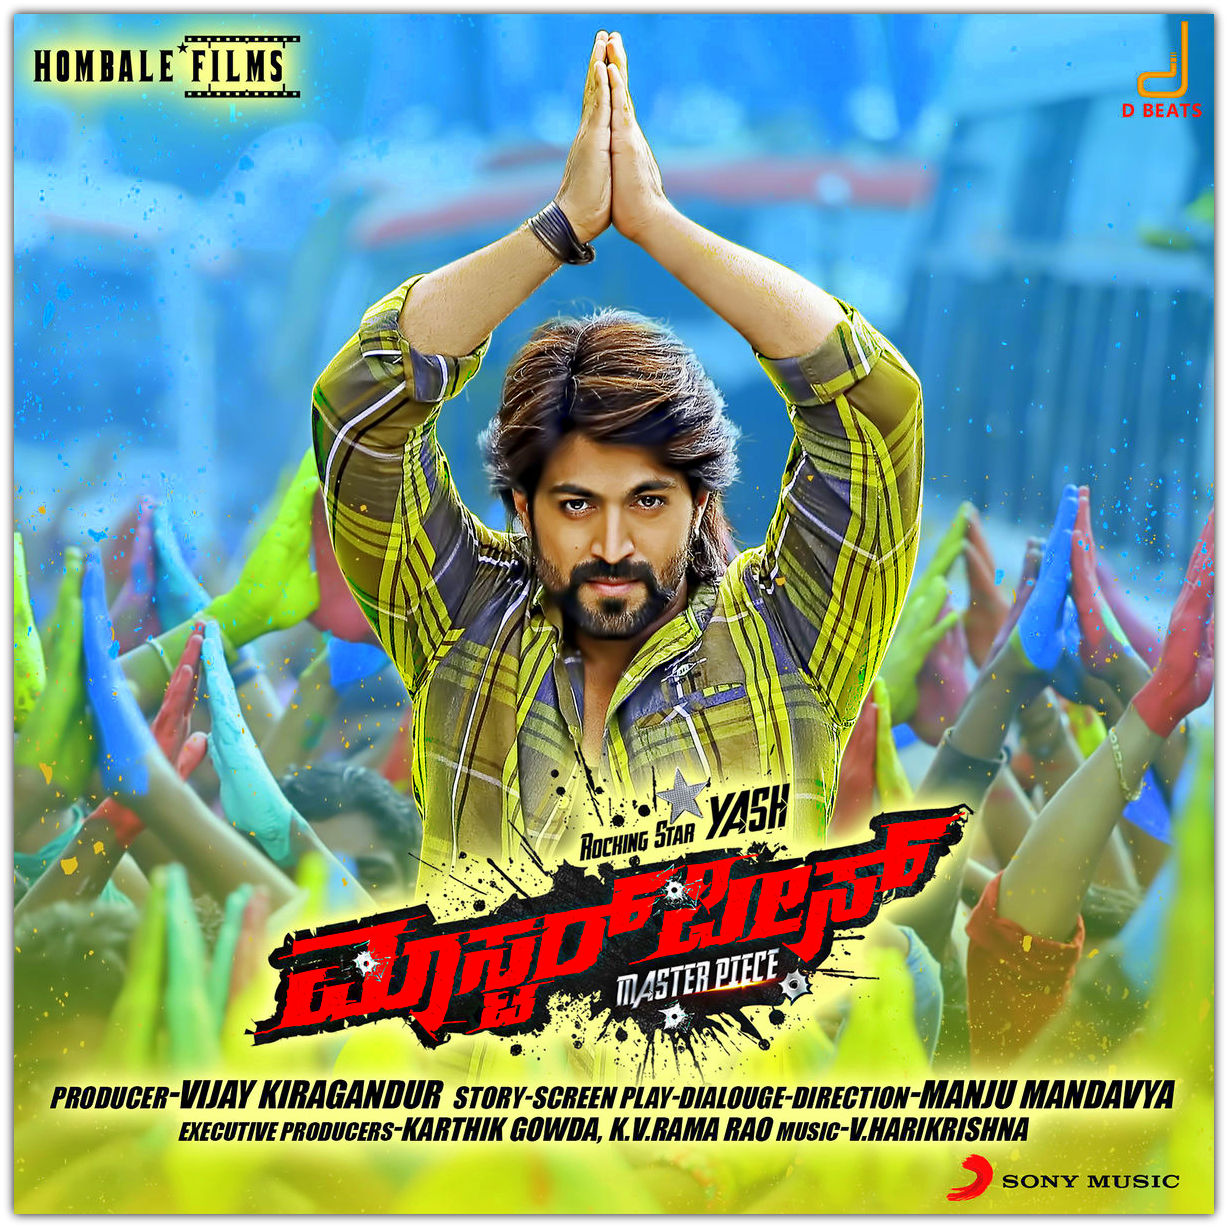 Kannada ak47 movie mp3 songs download / Religious themes in